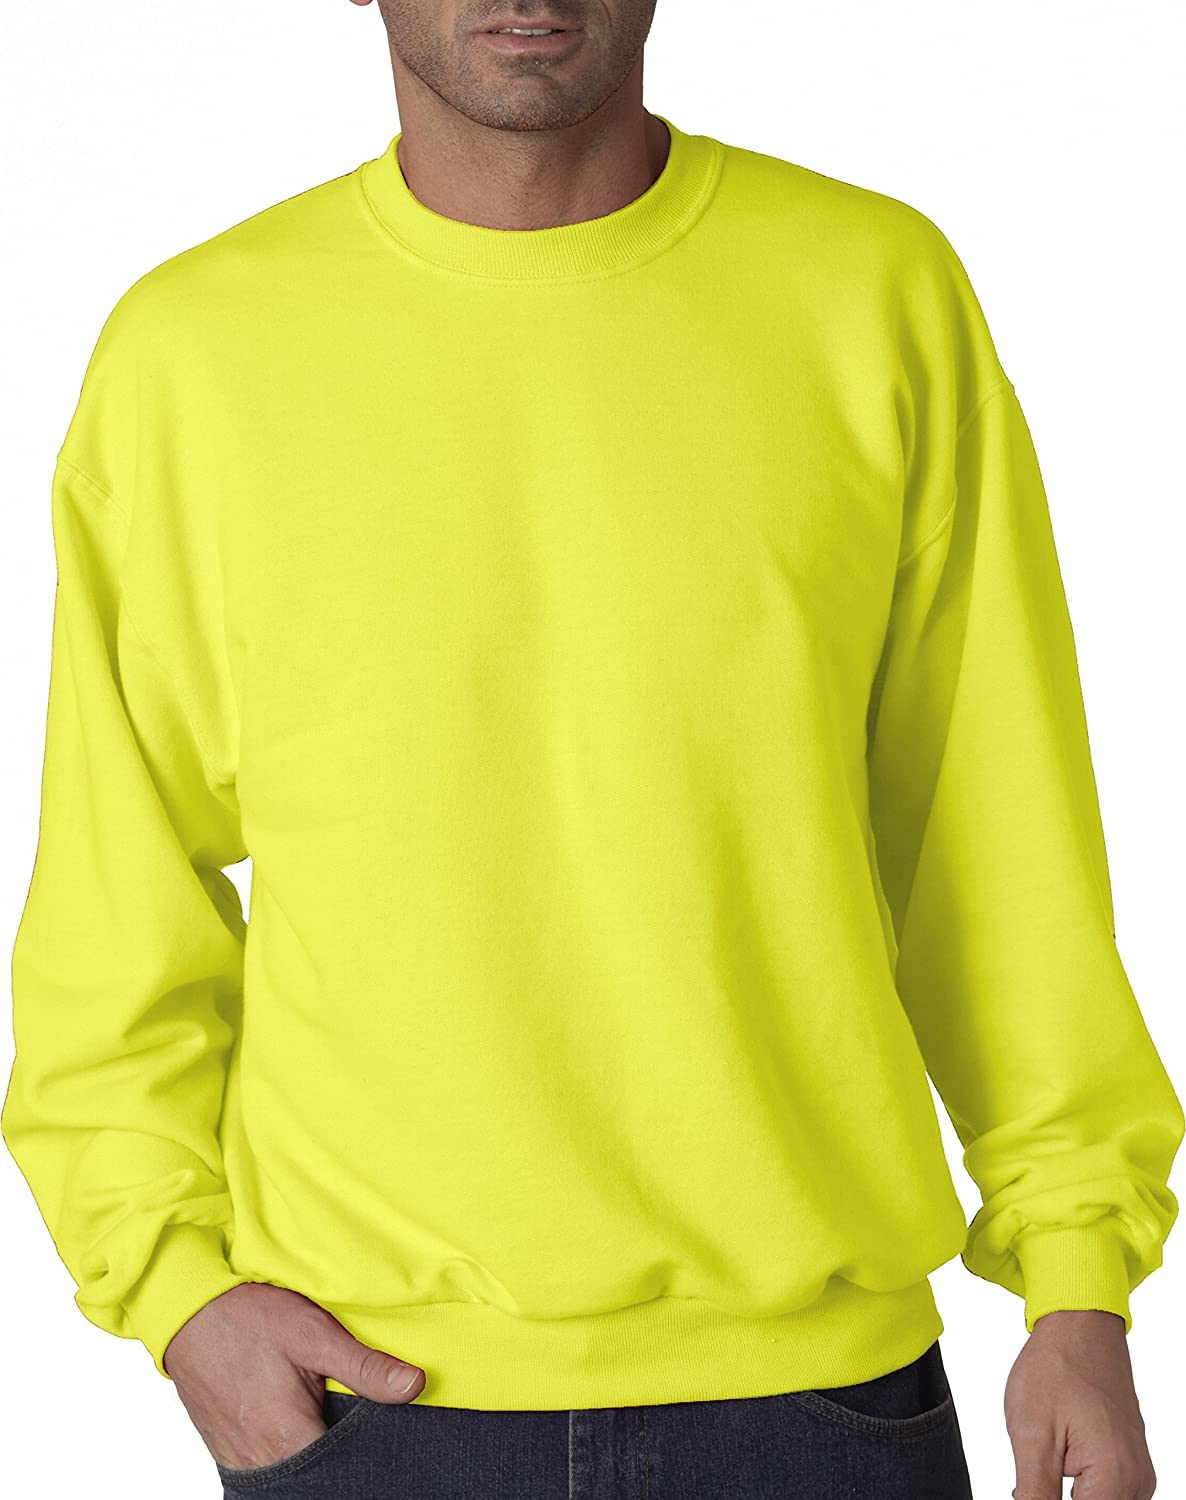 Jerzees Men's Crew Neck Sweatshirt Jerzees 562